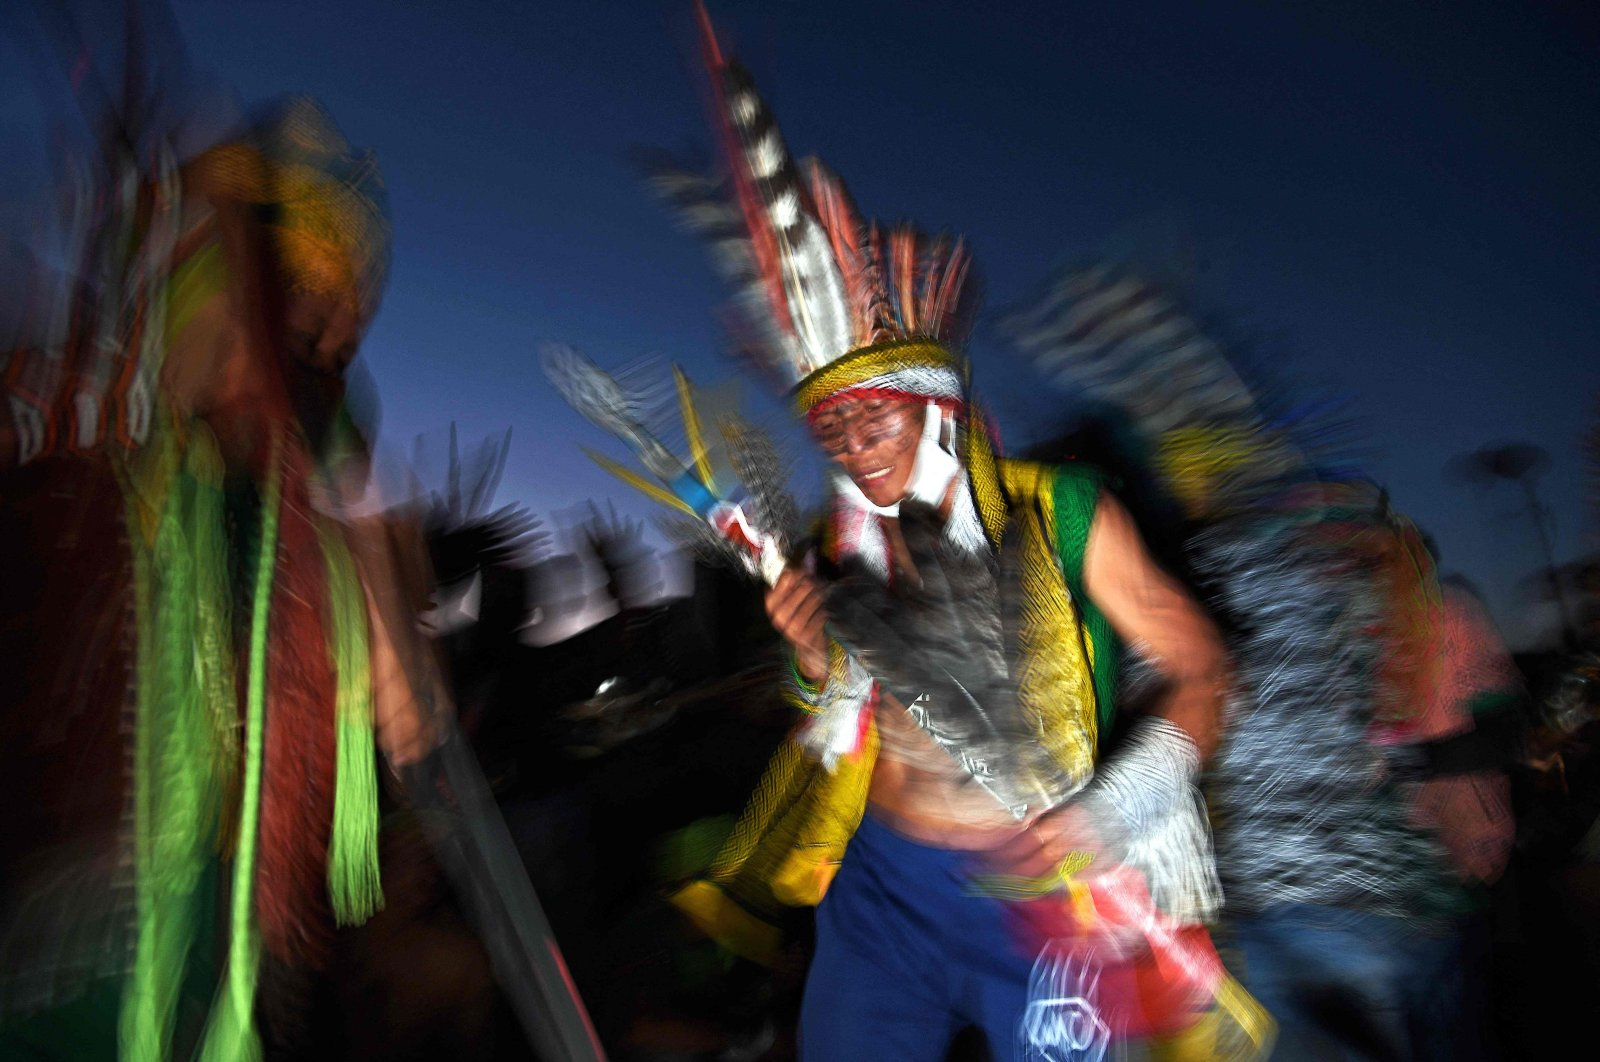 A member of the Huni Kuin tribe takes part in a ceremony at a protest camp in Brasilia, Brazil, Aug. 22, 2021. (AFP Photo)